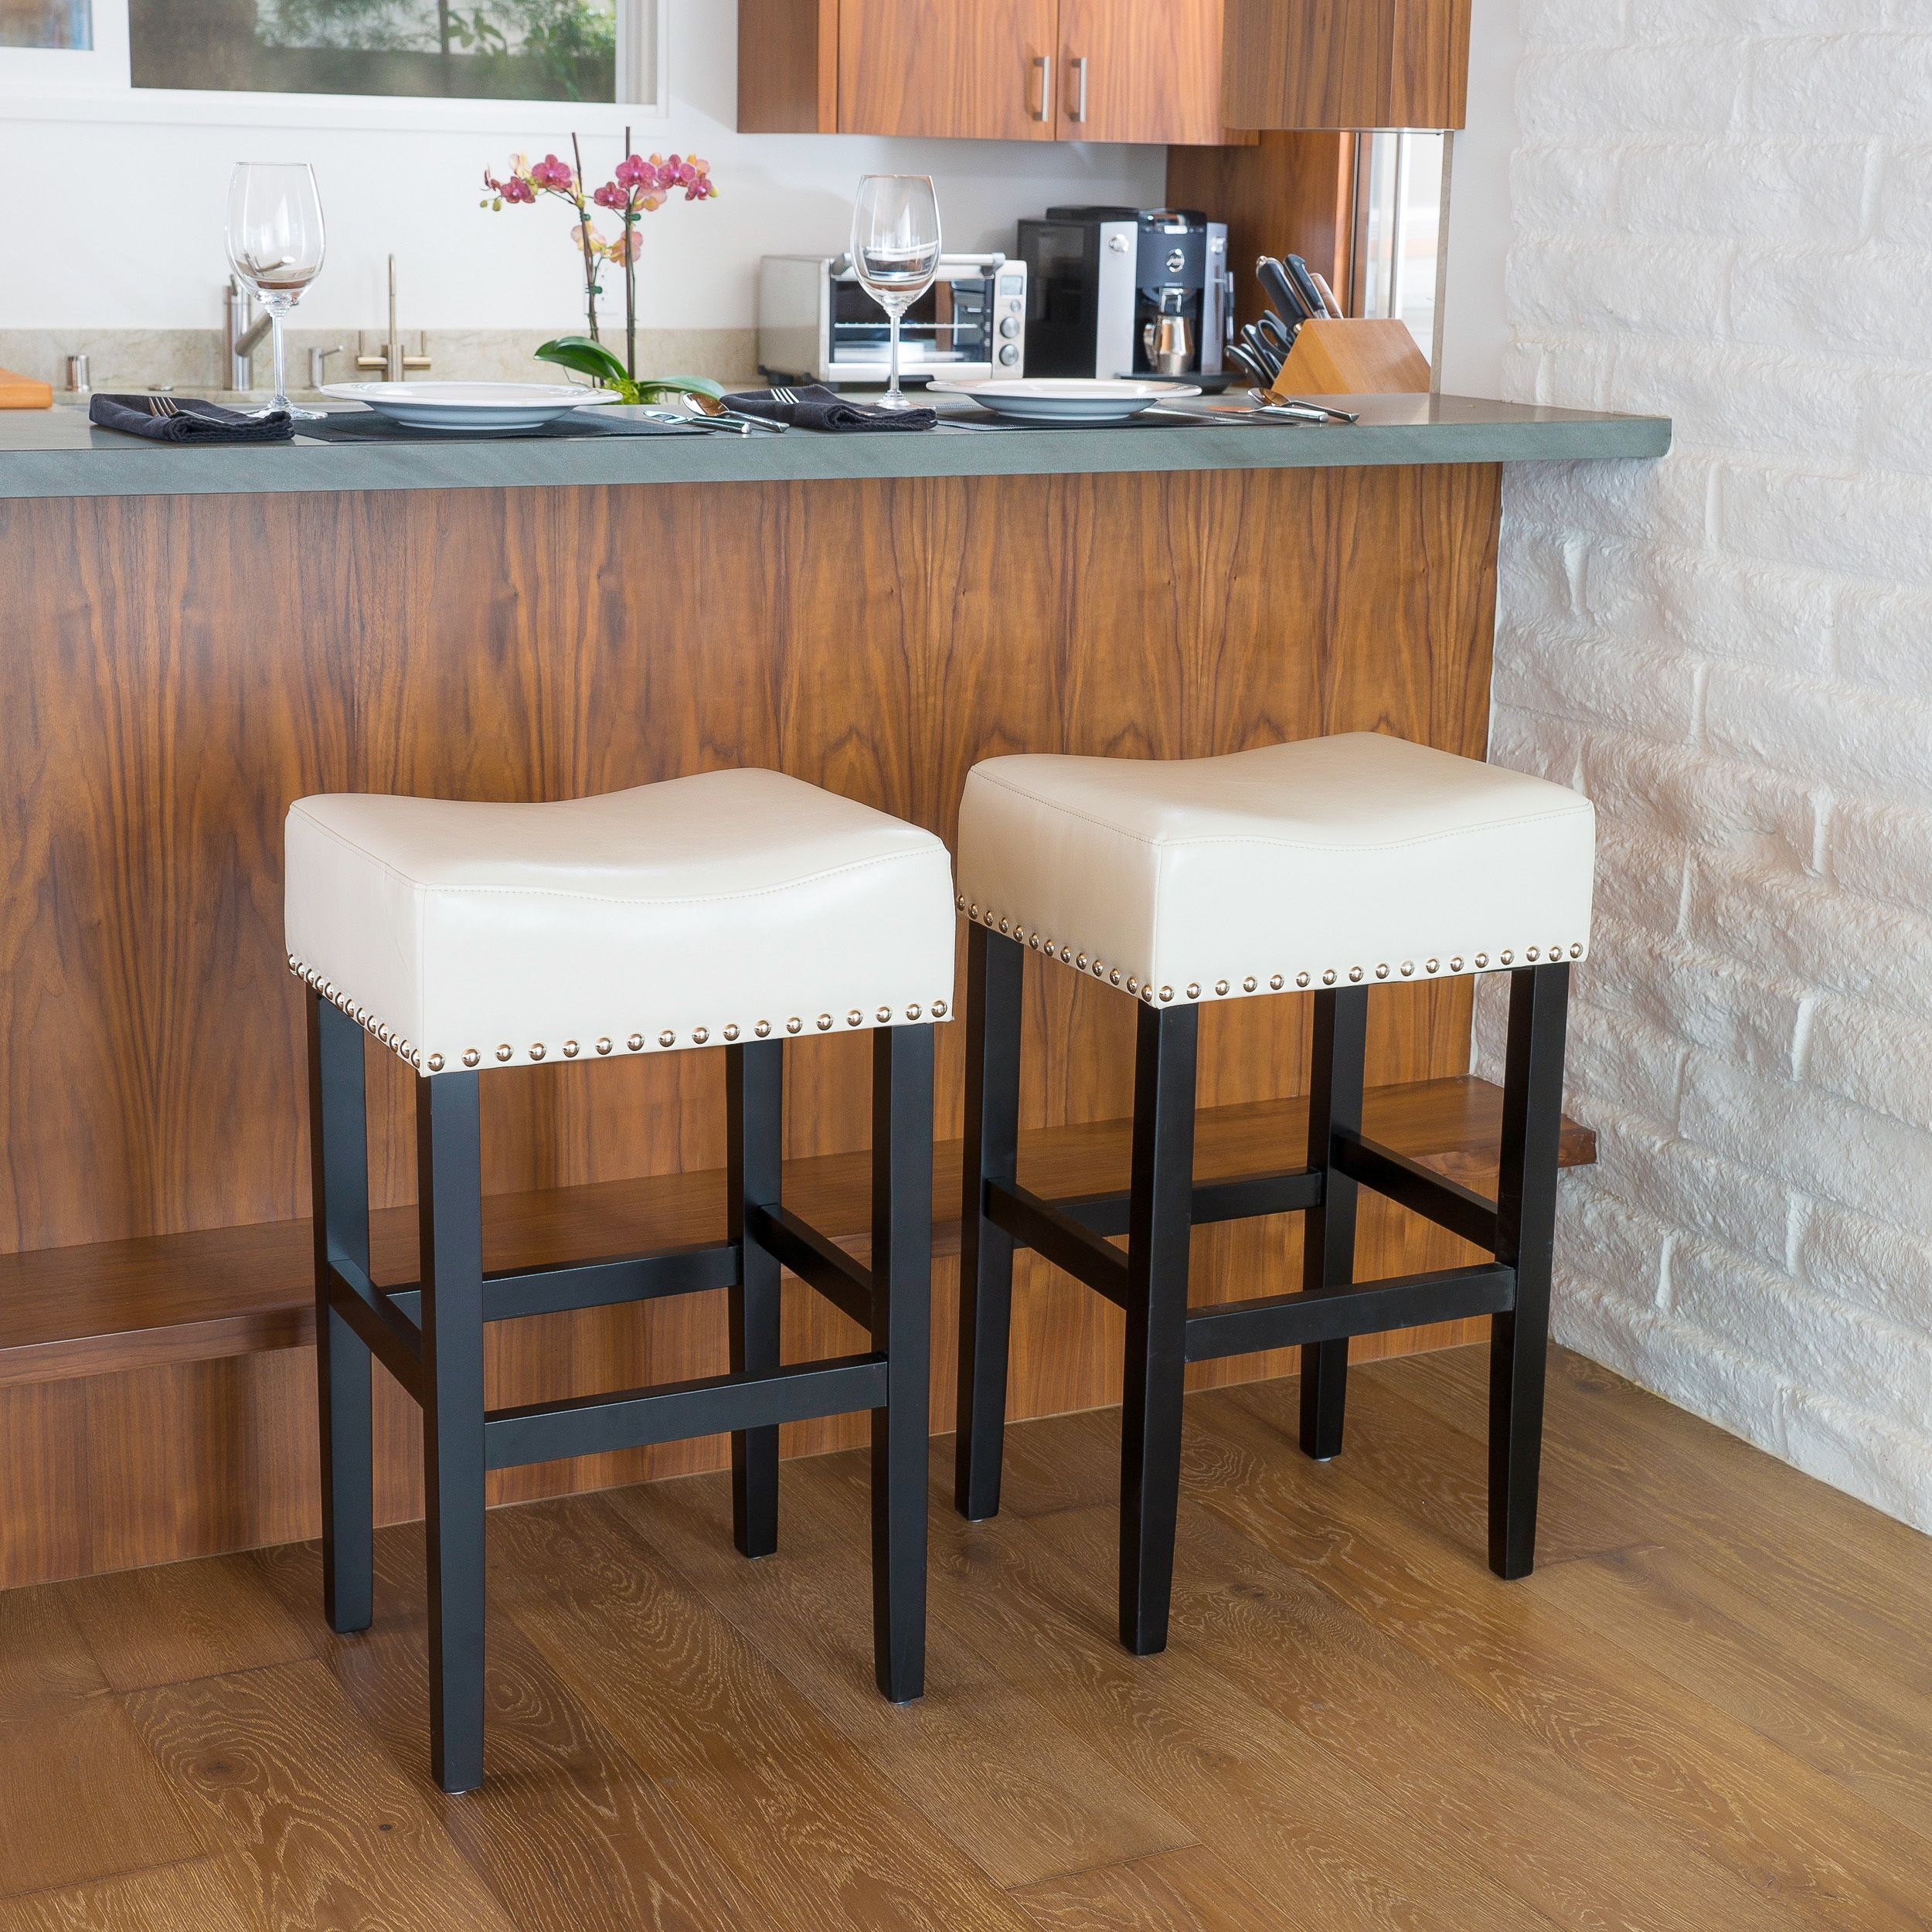 Lisette 30 Inch Backless Leather Bar Stool Set Of 2 By Christopher Knight Home Black Bar Stools Leather Bar Stools Leather Counter Stools